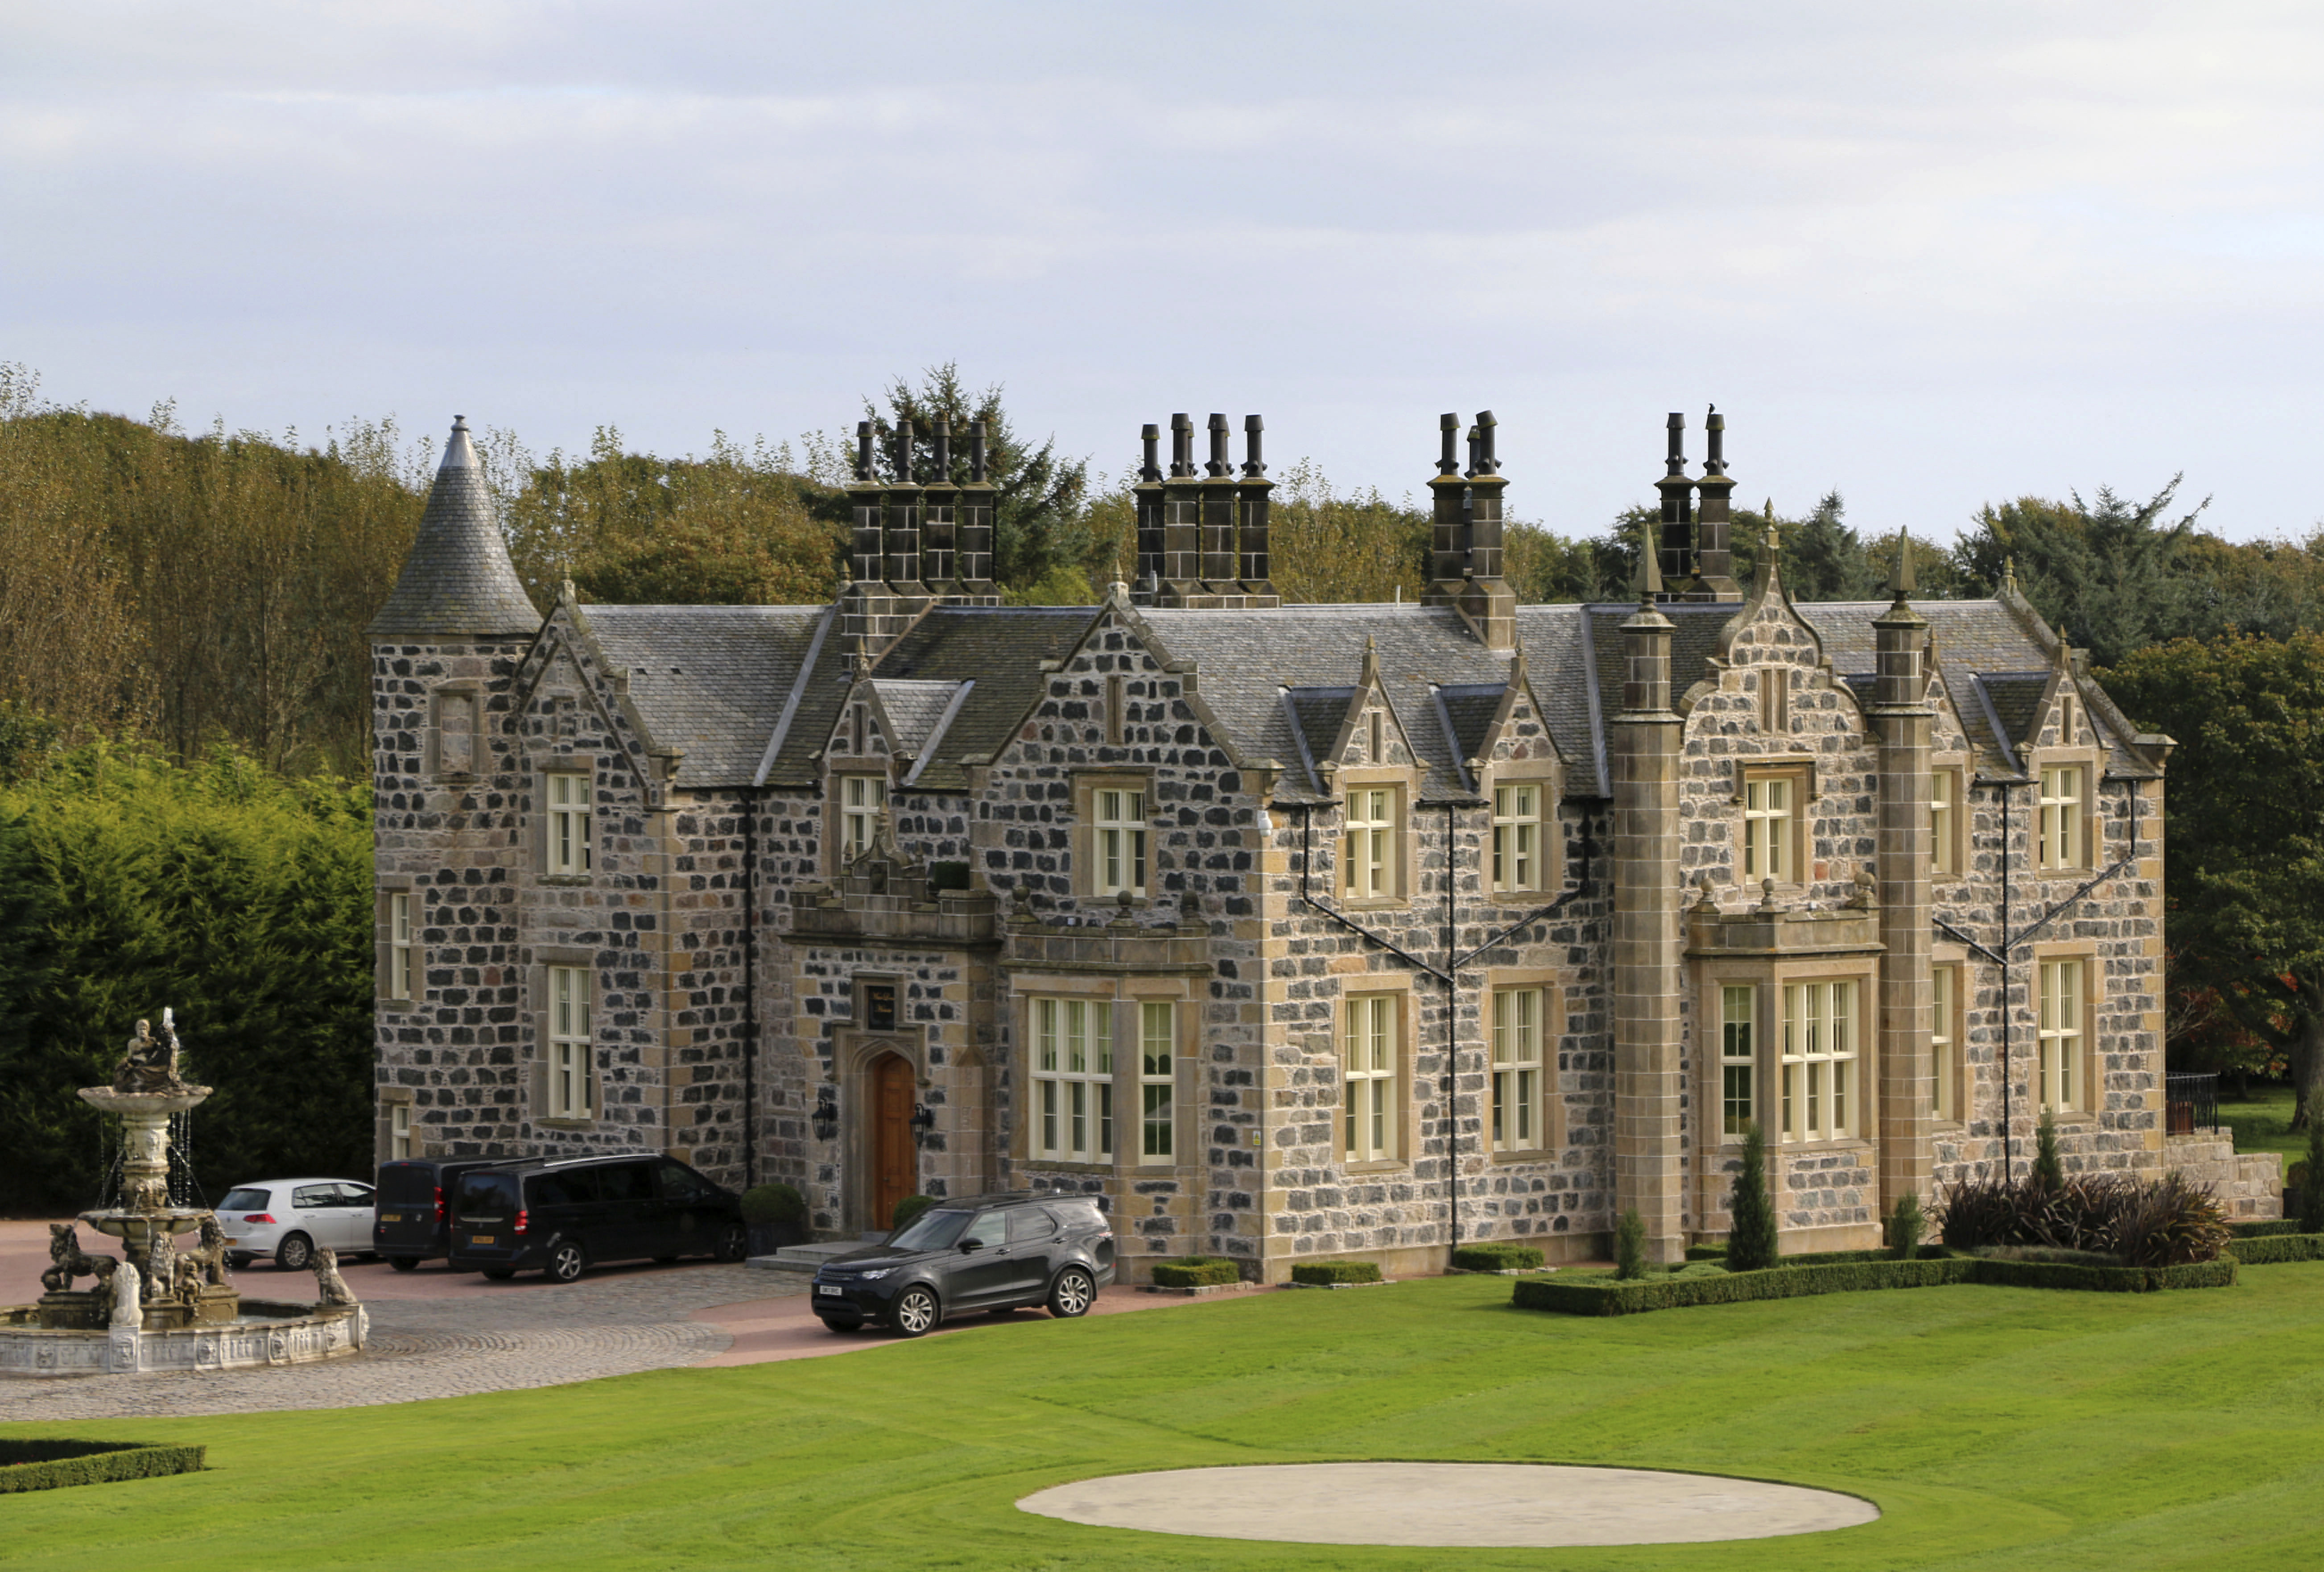 A view of MacLeod House, a sixteen room boutique hotel, at the Trump International golf course on Oct. 6, 2017 in Balmedie, Scotland. Trump took to Twitter to promote the golf course on Mar. 2, 2019 as the world's  greatest  and  furthers U.K. relationship.